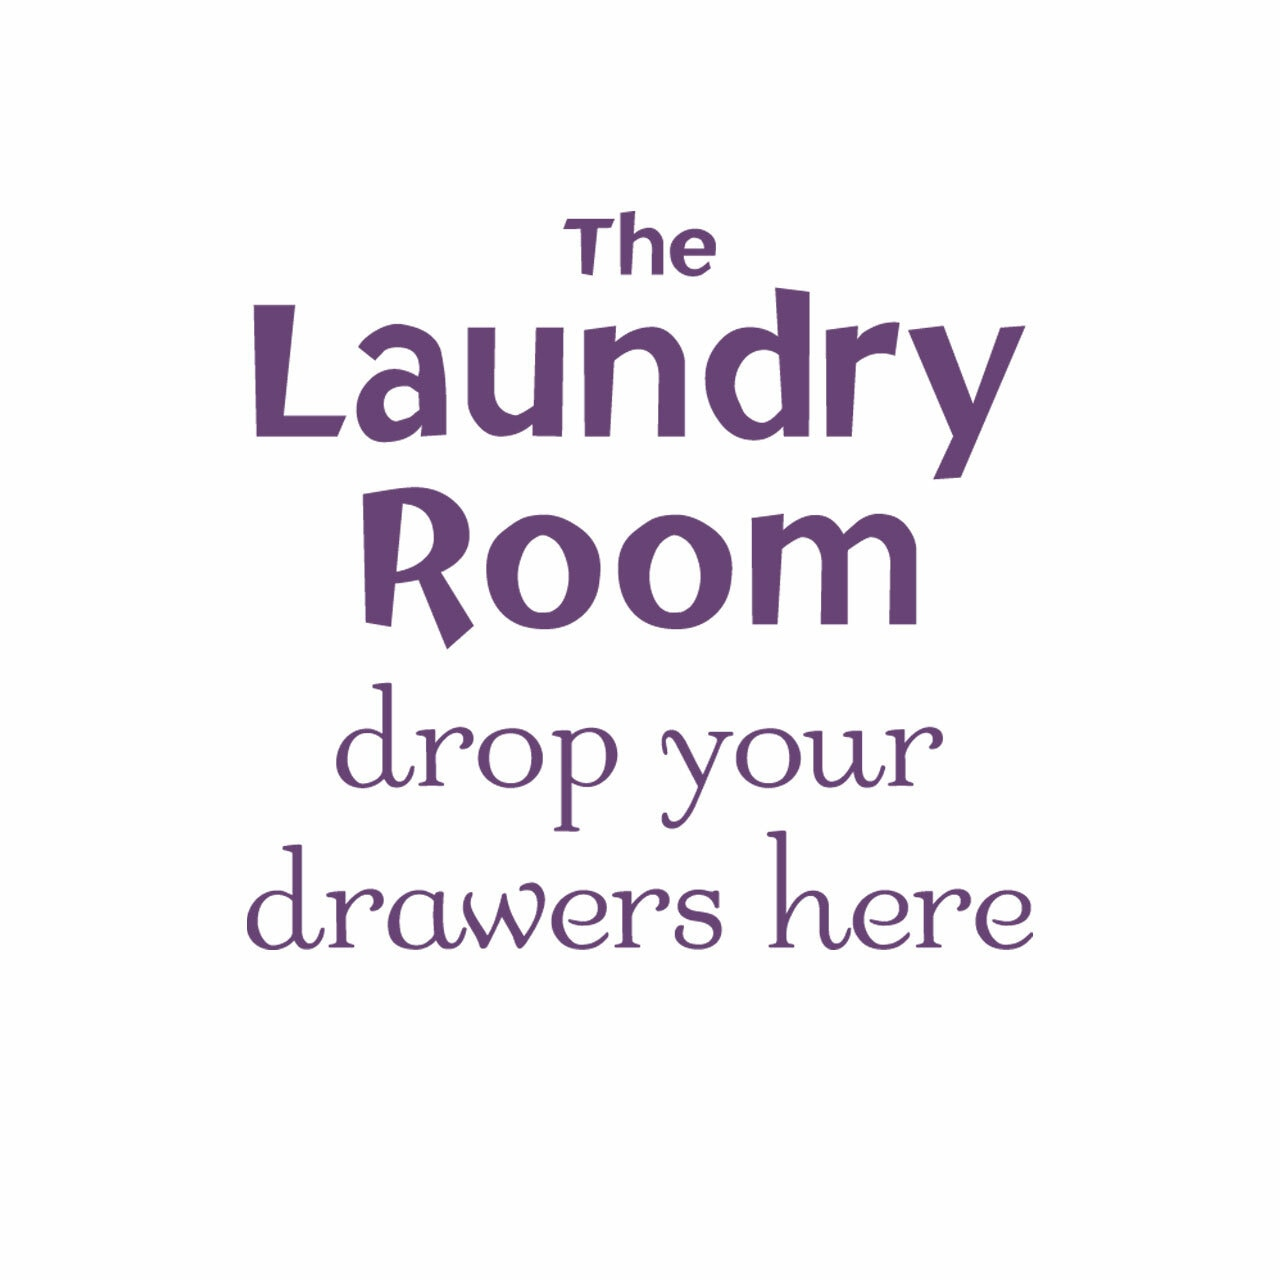 The laundry room drop your drawers here vinyl saying in black on a white background